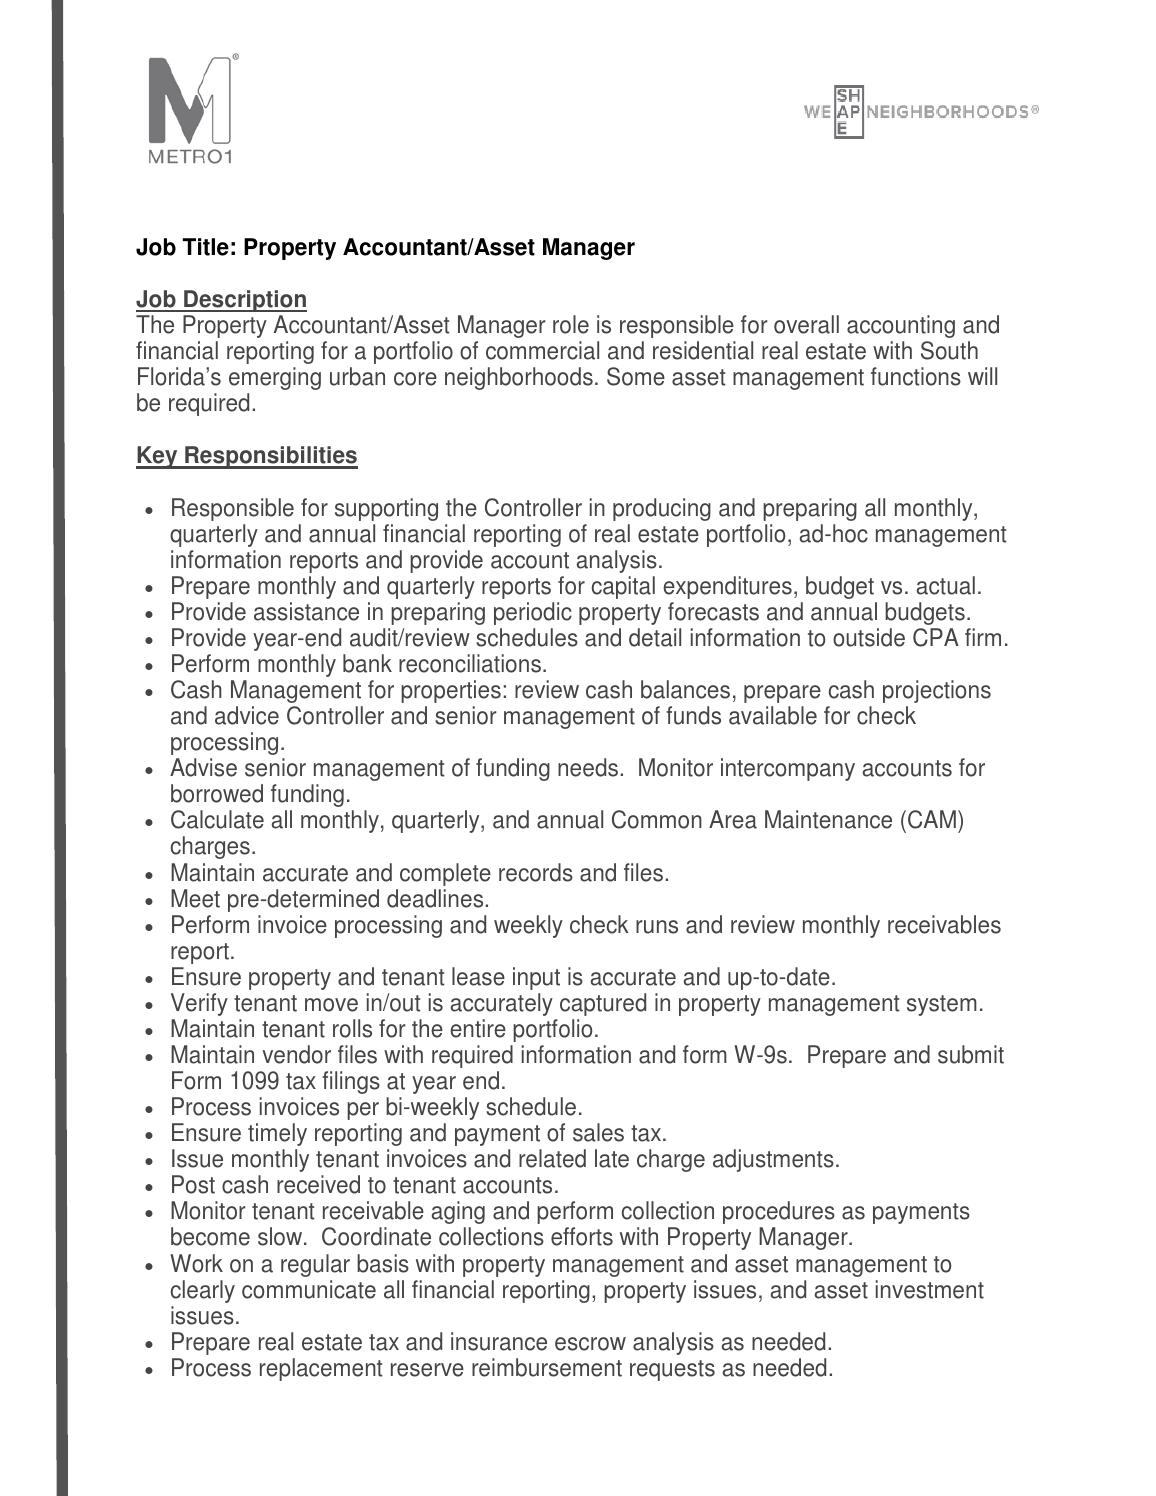 property accountant asset manager